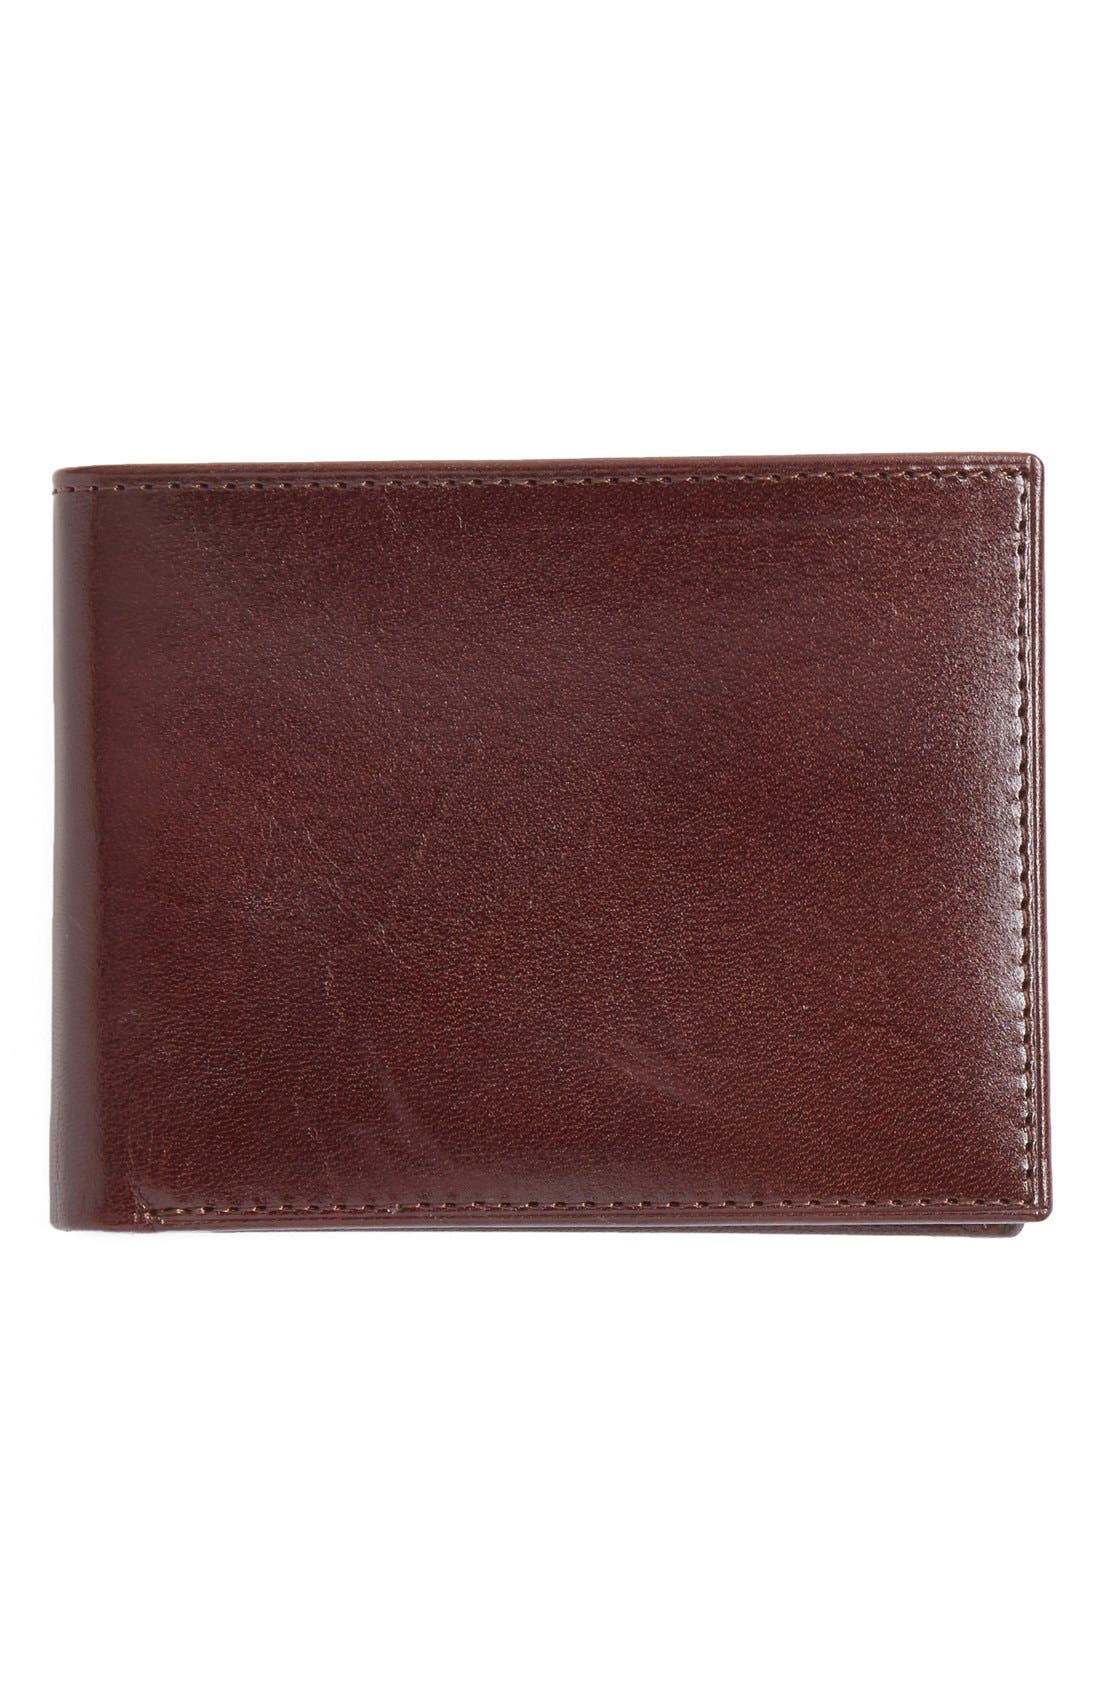 Johnston & Murphy Slimfold Leather Wallet